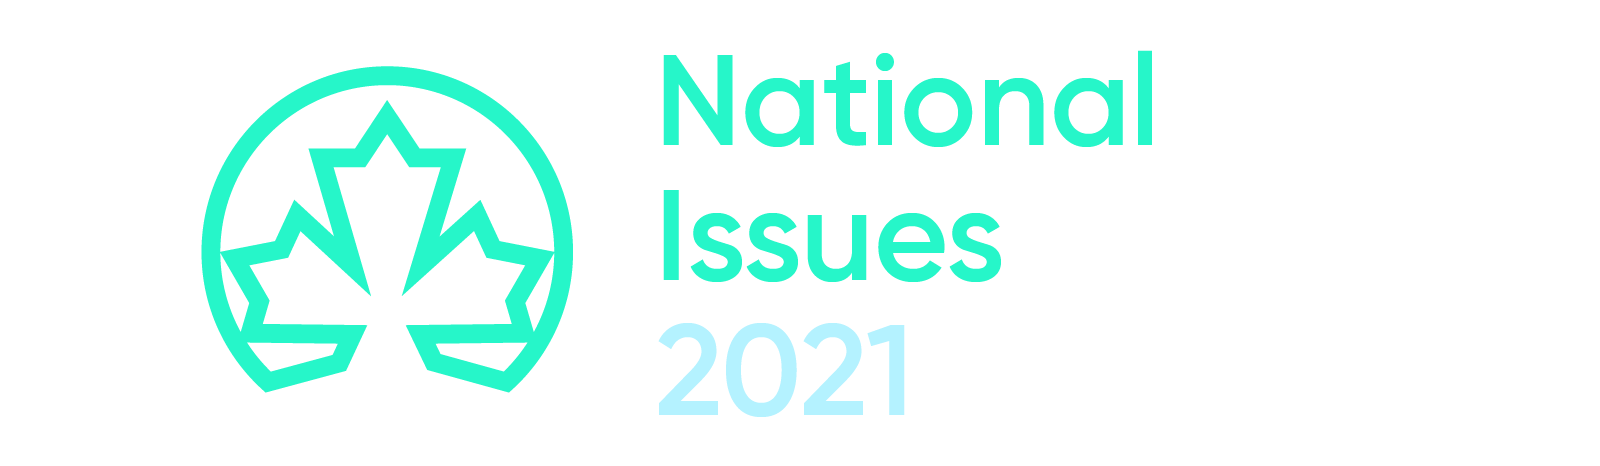 National Issues Report